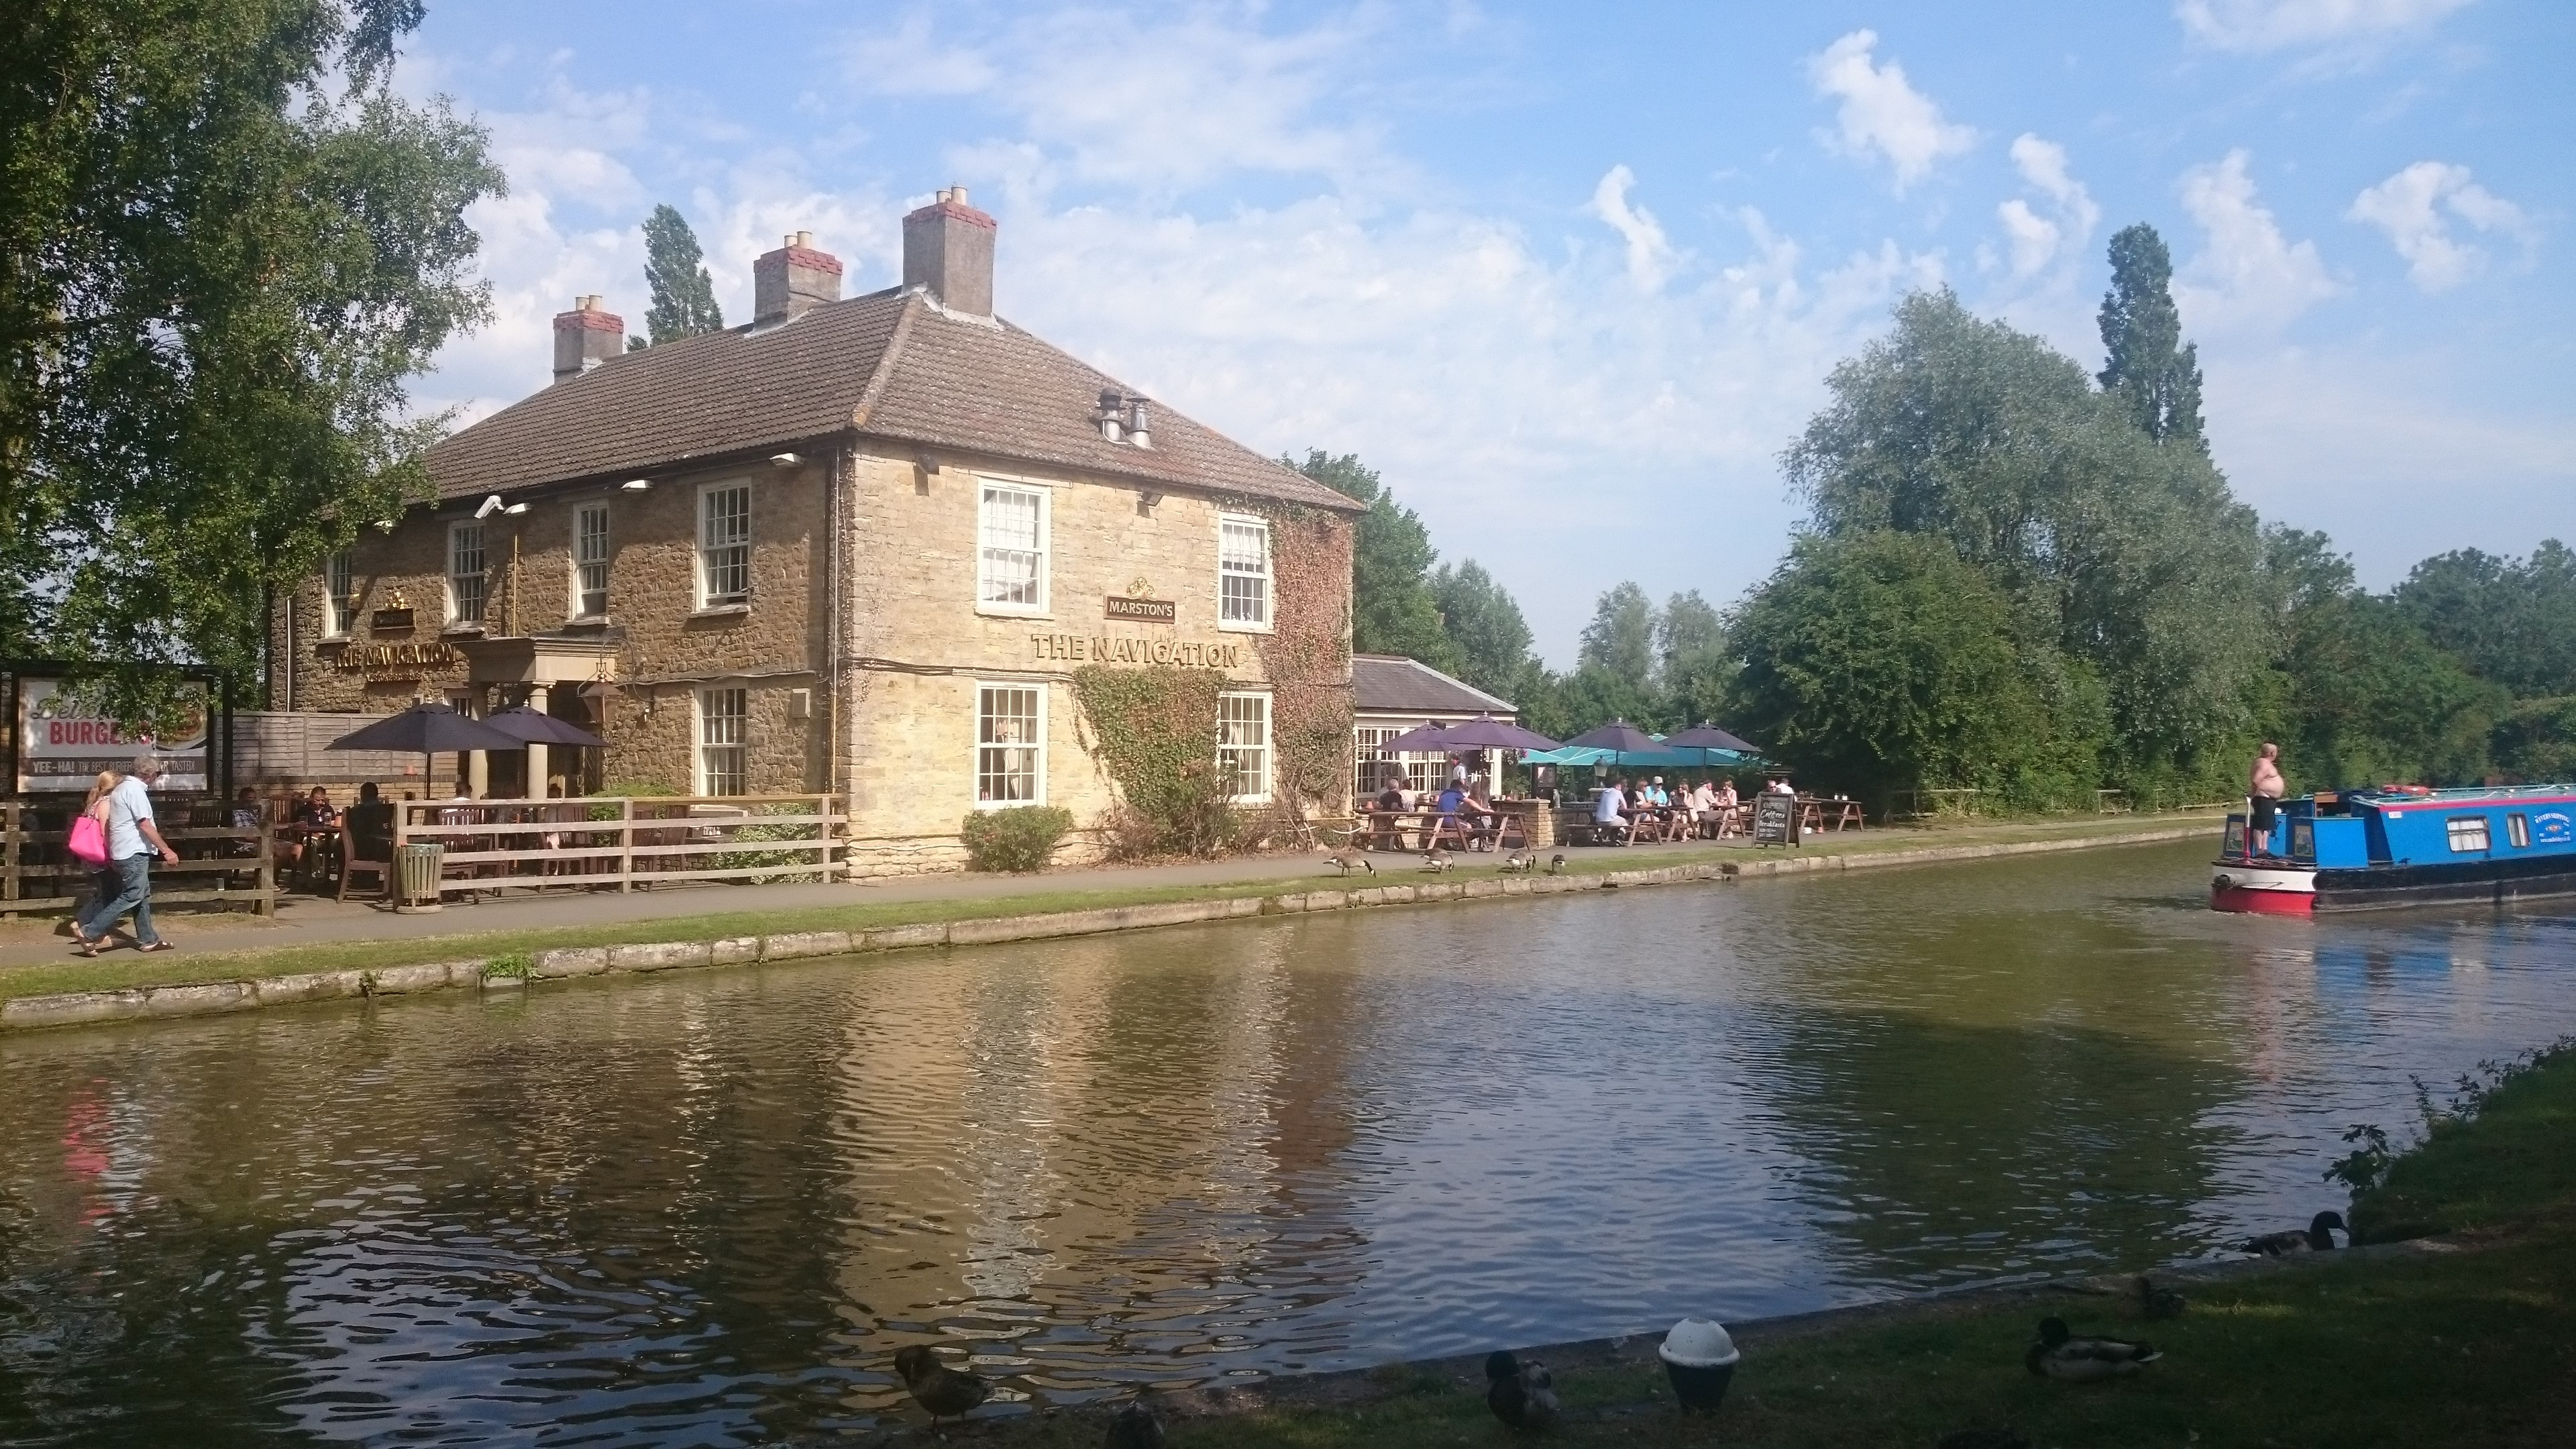 The Navigation, Stoke Bruerne